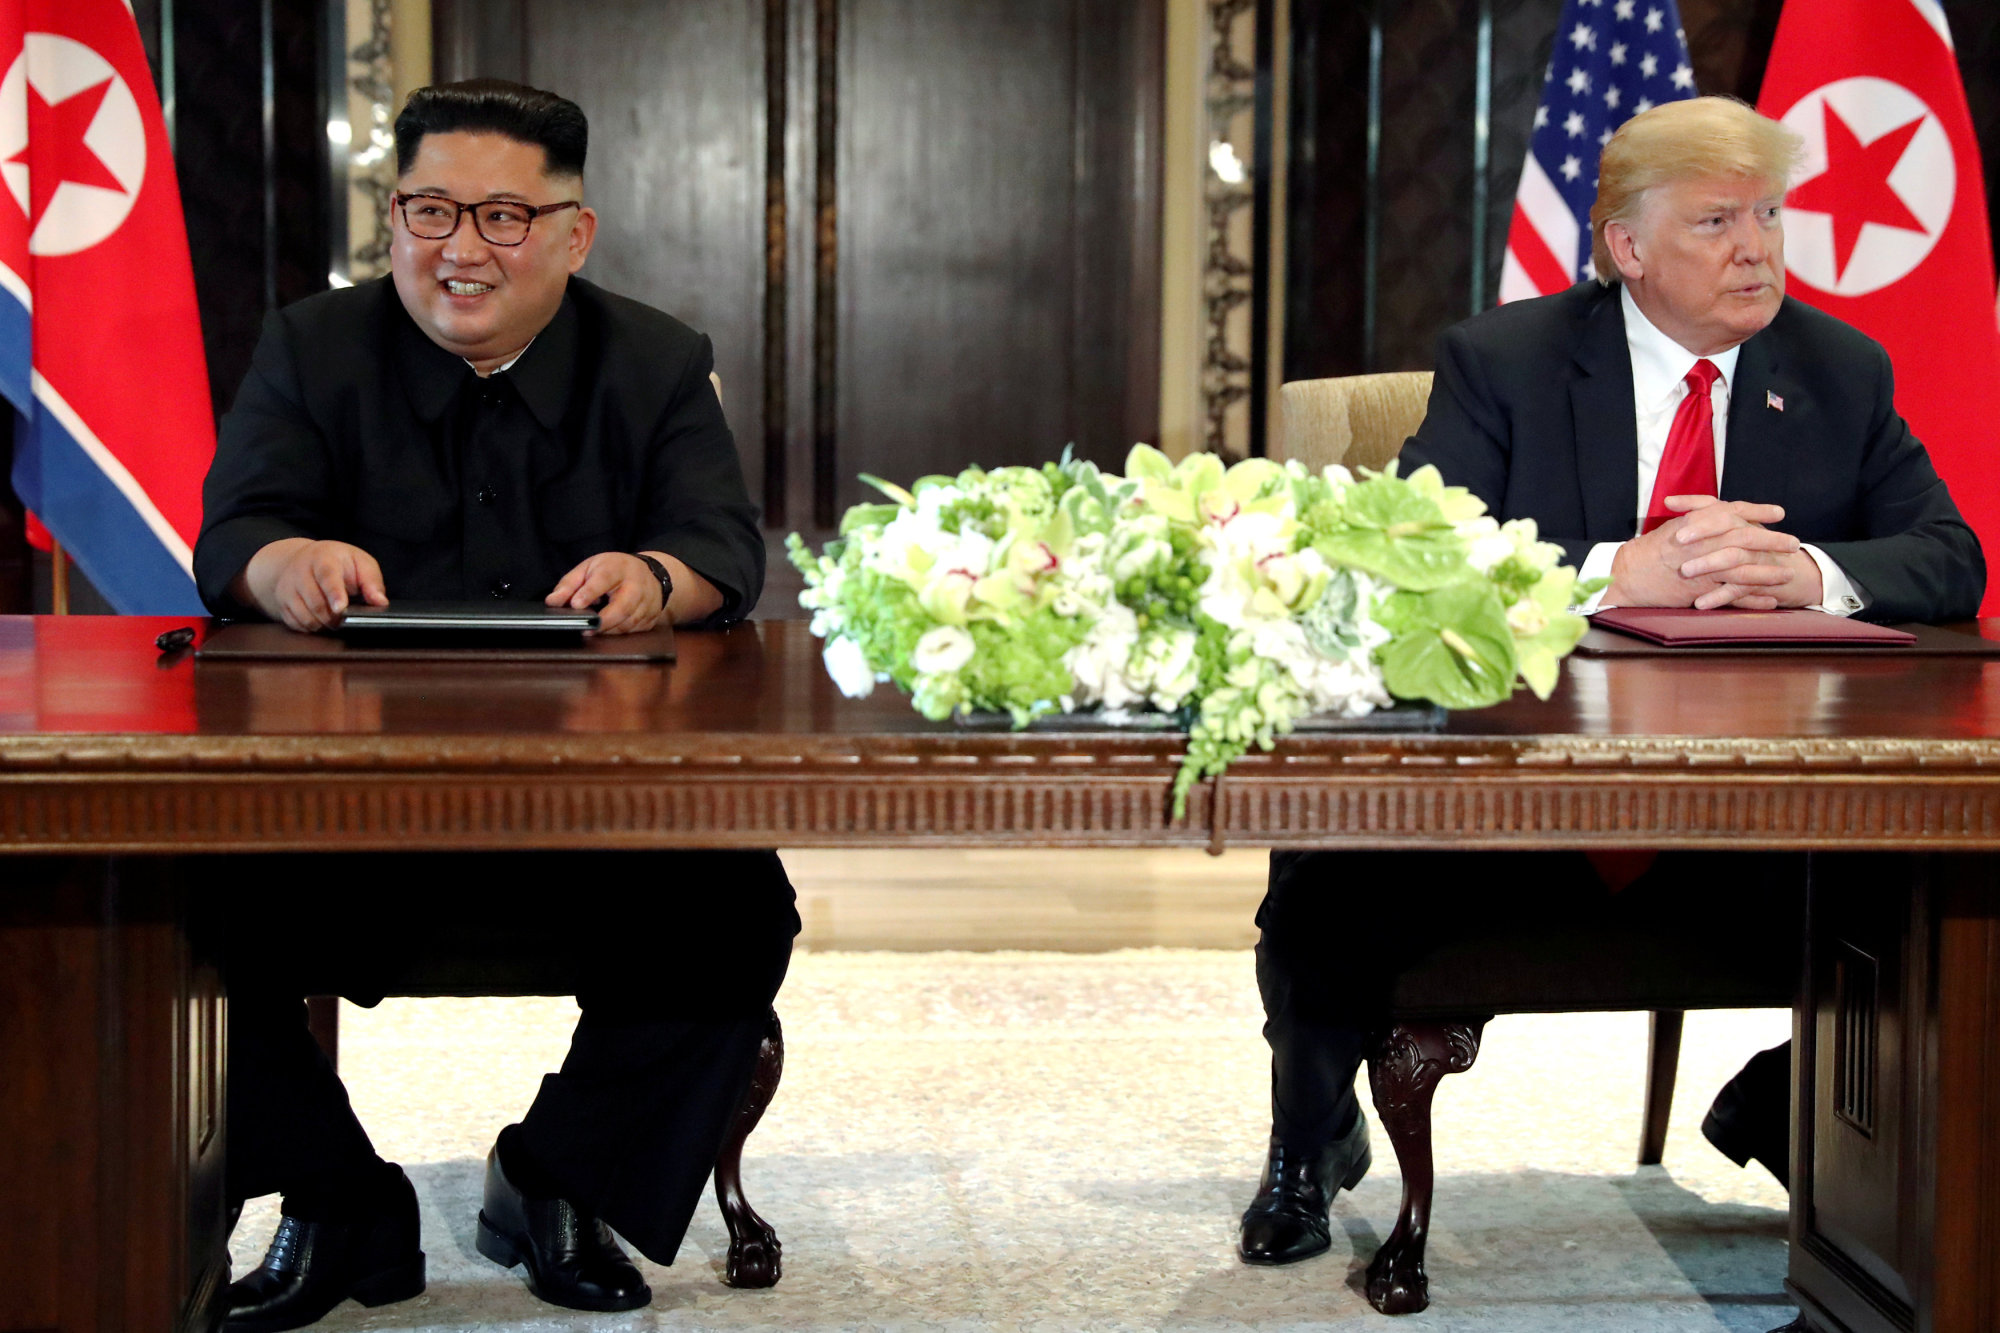 U.S. President Donald Trump and North Korea's leader Kim Jong Un hold a signing ceremony after their first meeting in Singapore on June 12. A South Korean newspaper reported Japan is ready to host a second U.S.-North Korea summit meeting.   REUTERS